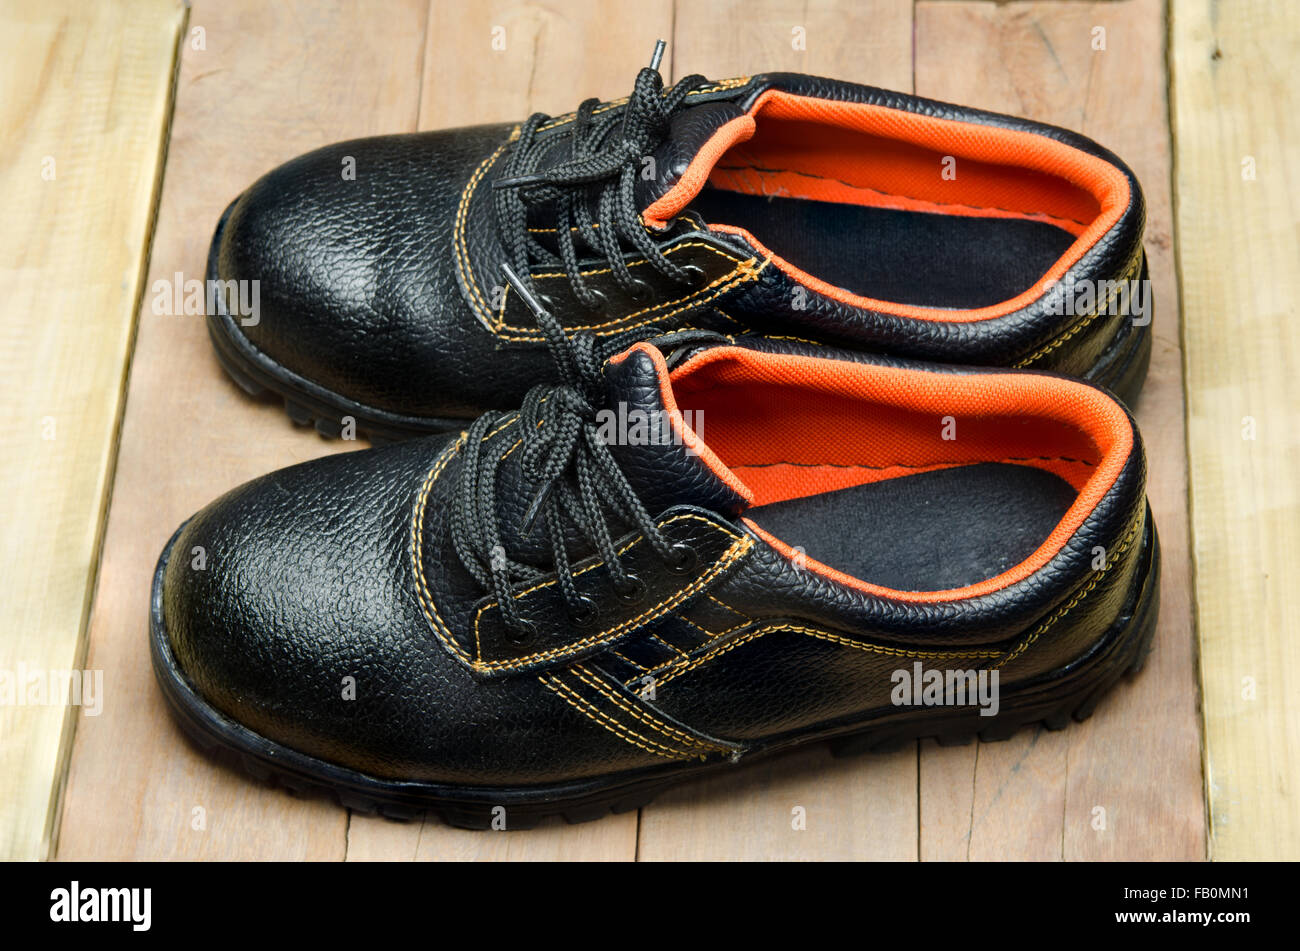 Black Steel Toe Safety of steel cap work boots . - Stock Image